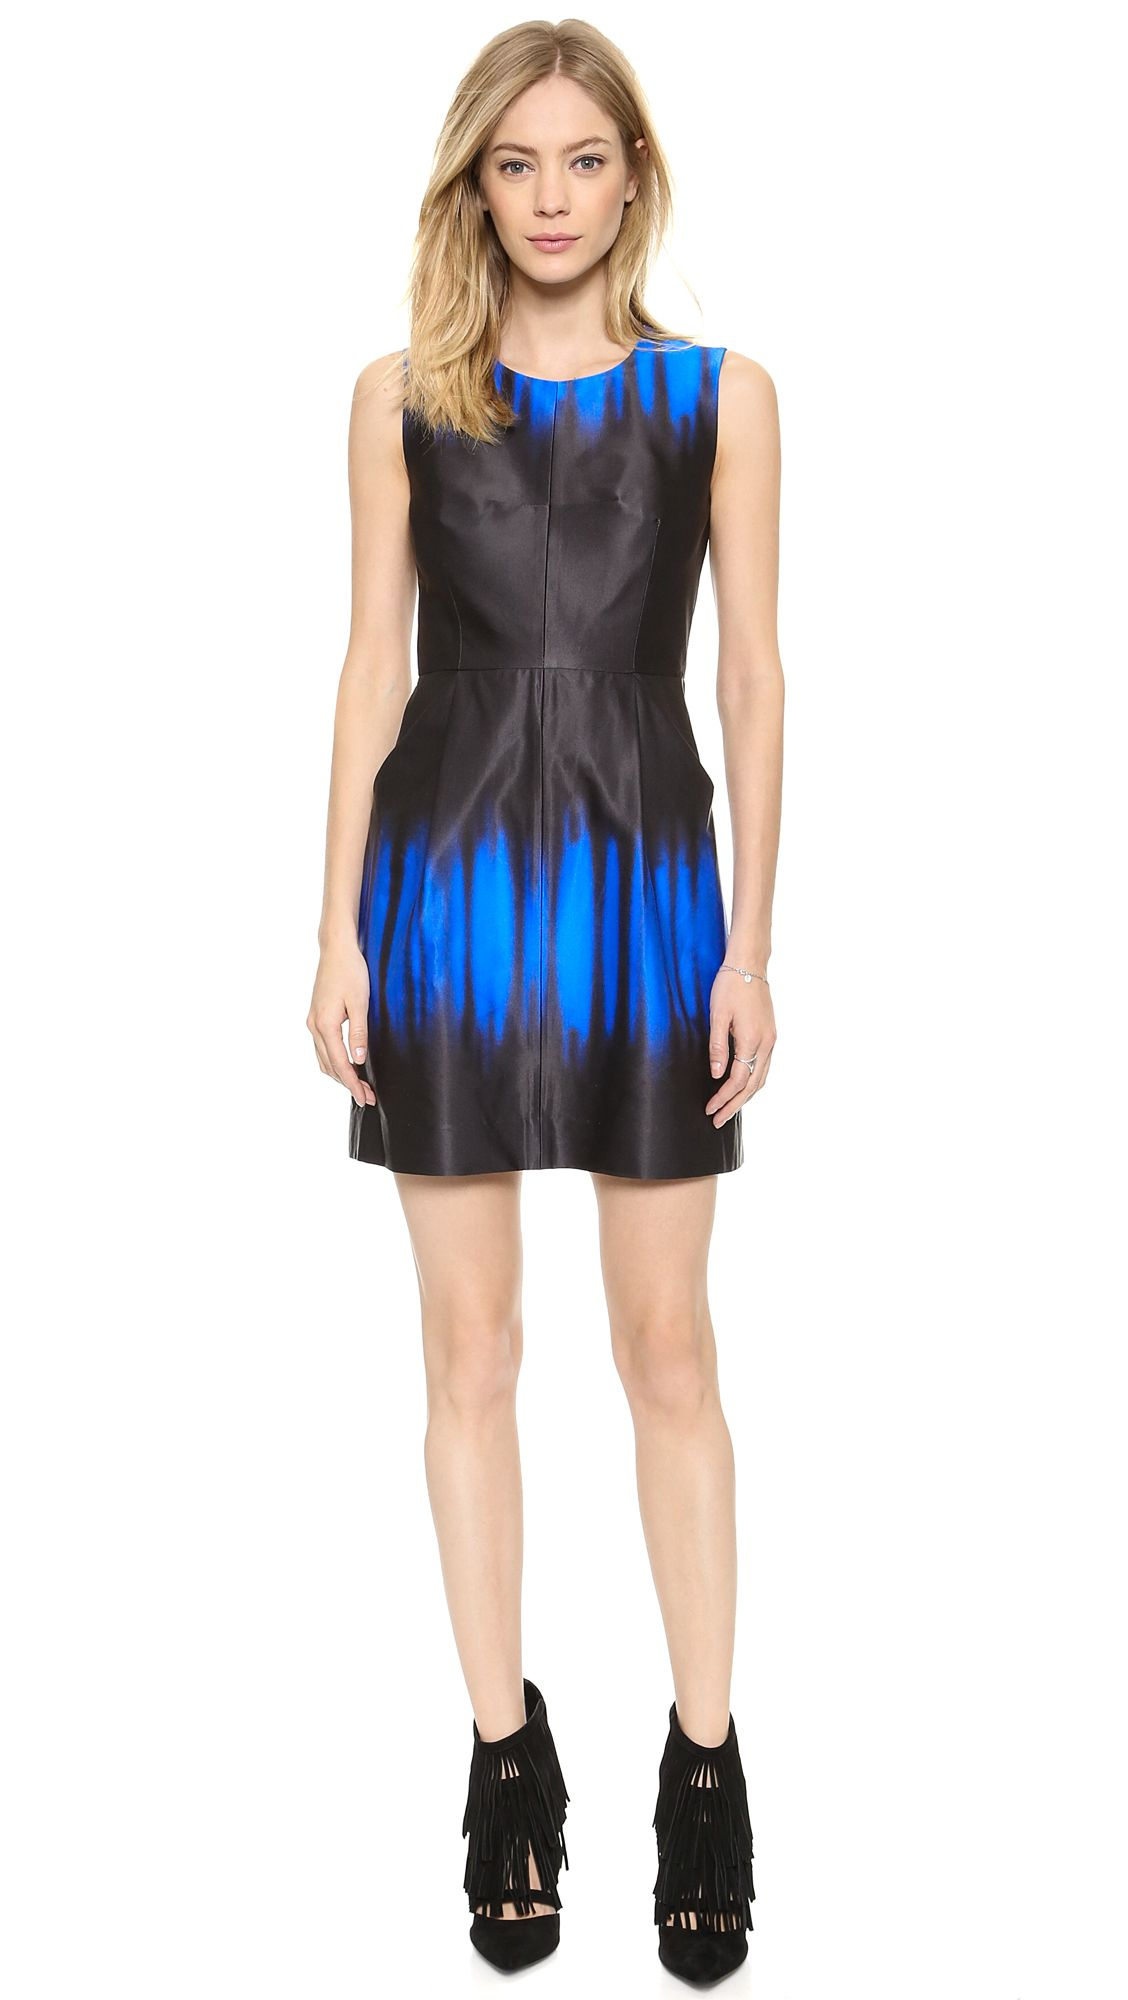 MILLY Coco Ombre Printed Dress via @stylelist | http://aol.it/1tiTnsC